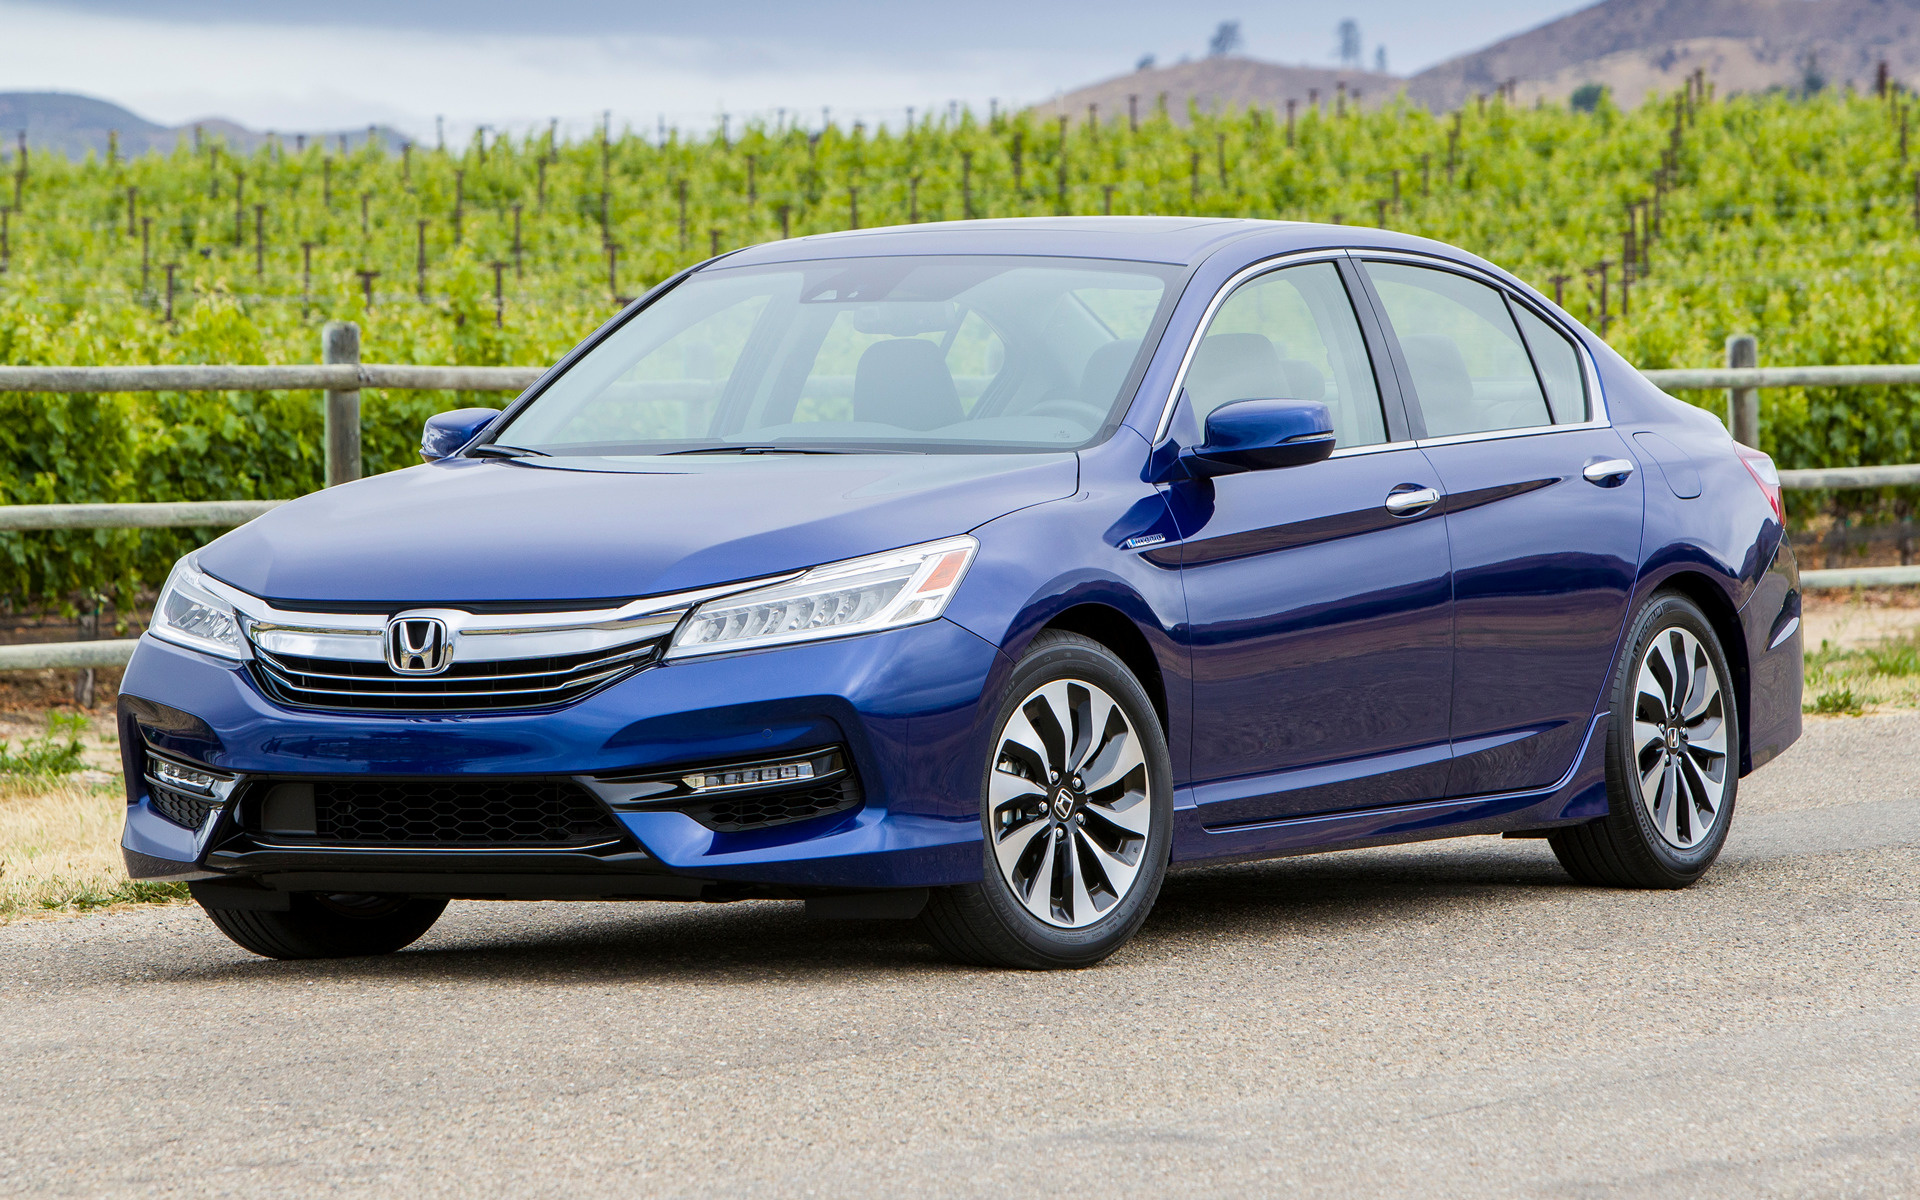 Honda Accord Hybrid Touring (2017) US Wallpapers and HD Images - Car ...